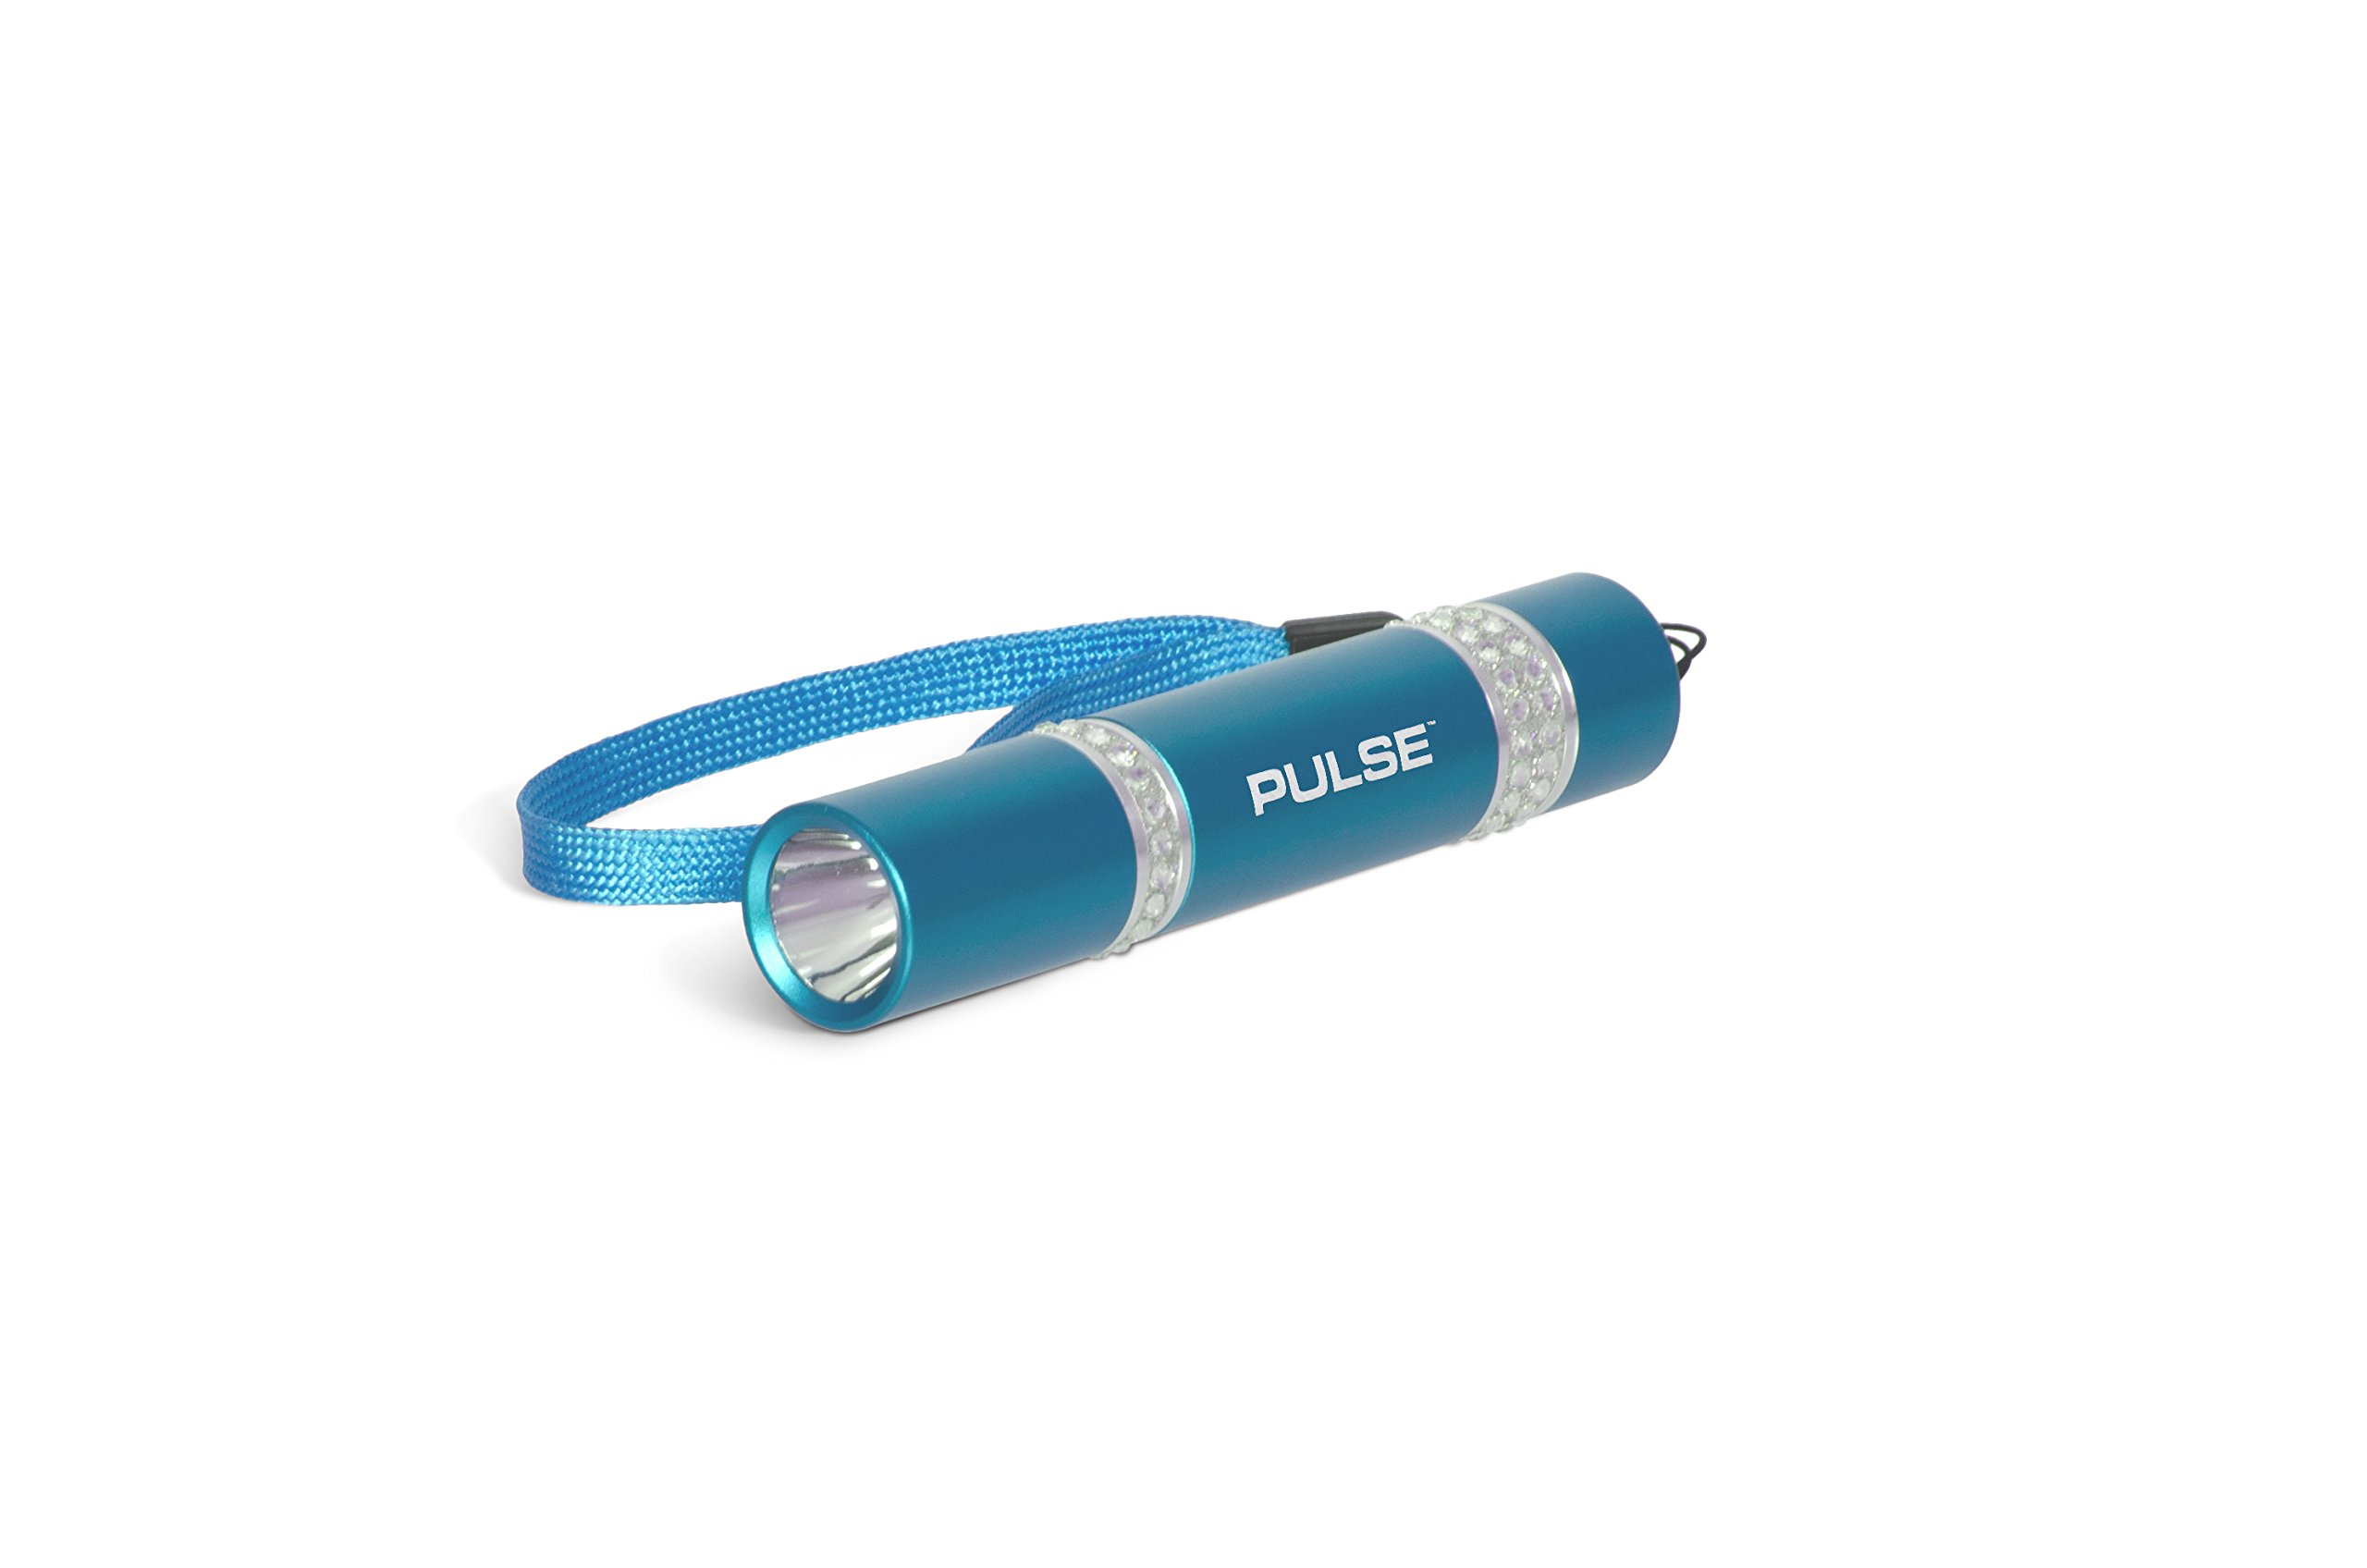 LUX-PRO PS205-TQ 40 lm PULSE SLIMS Flashlight with 10 h Runtime and 1xAA Alkaline Battery Included, Turquoise